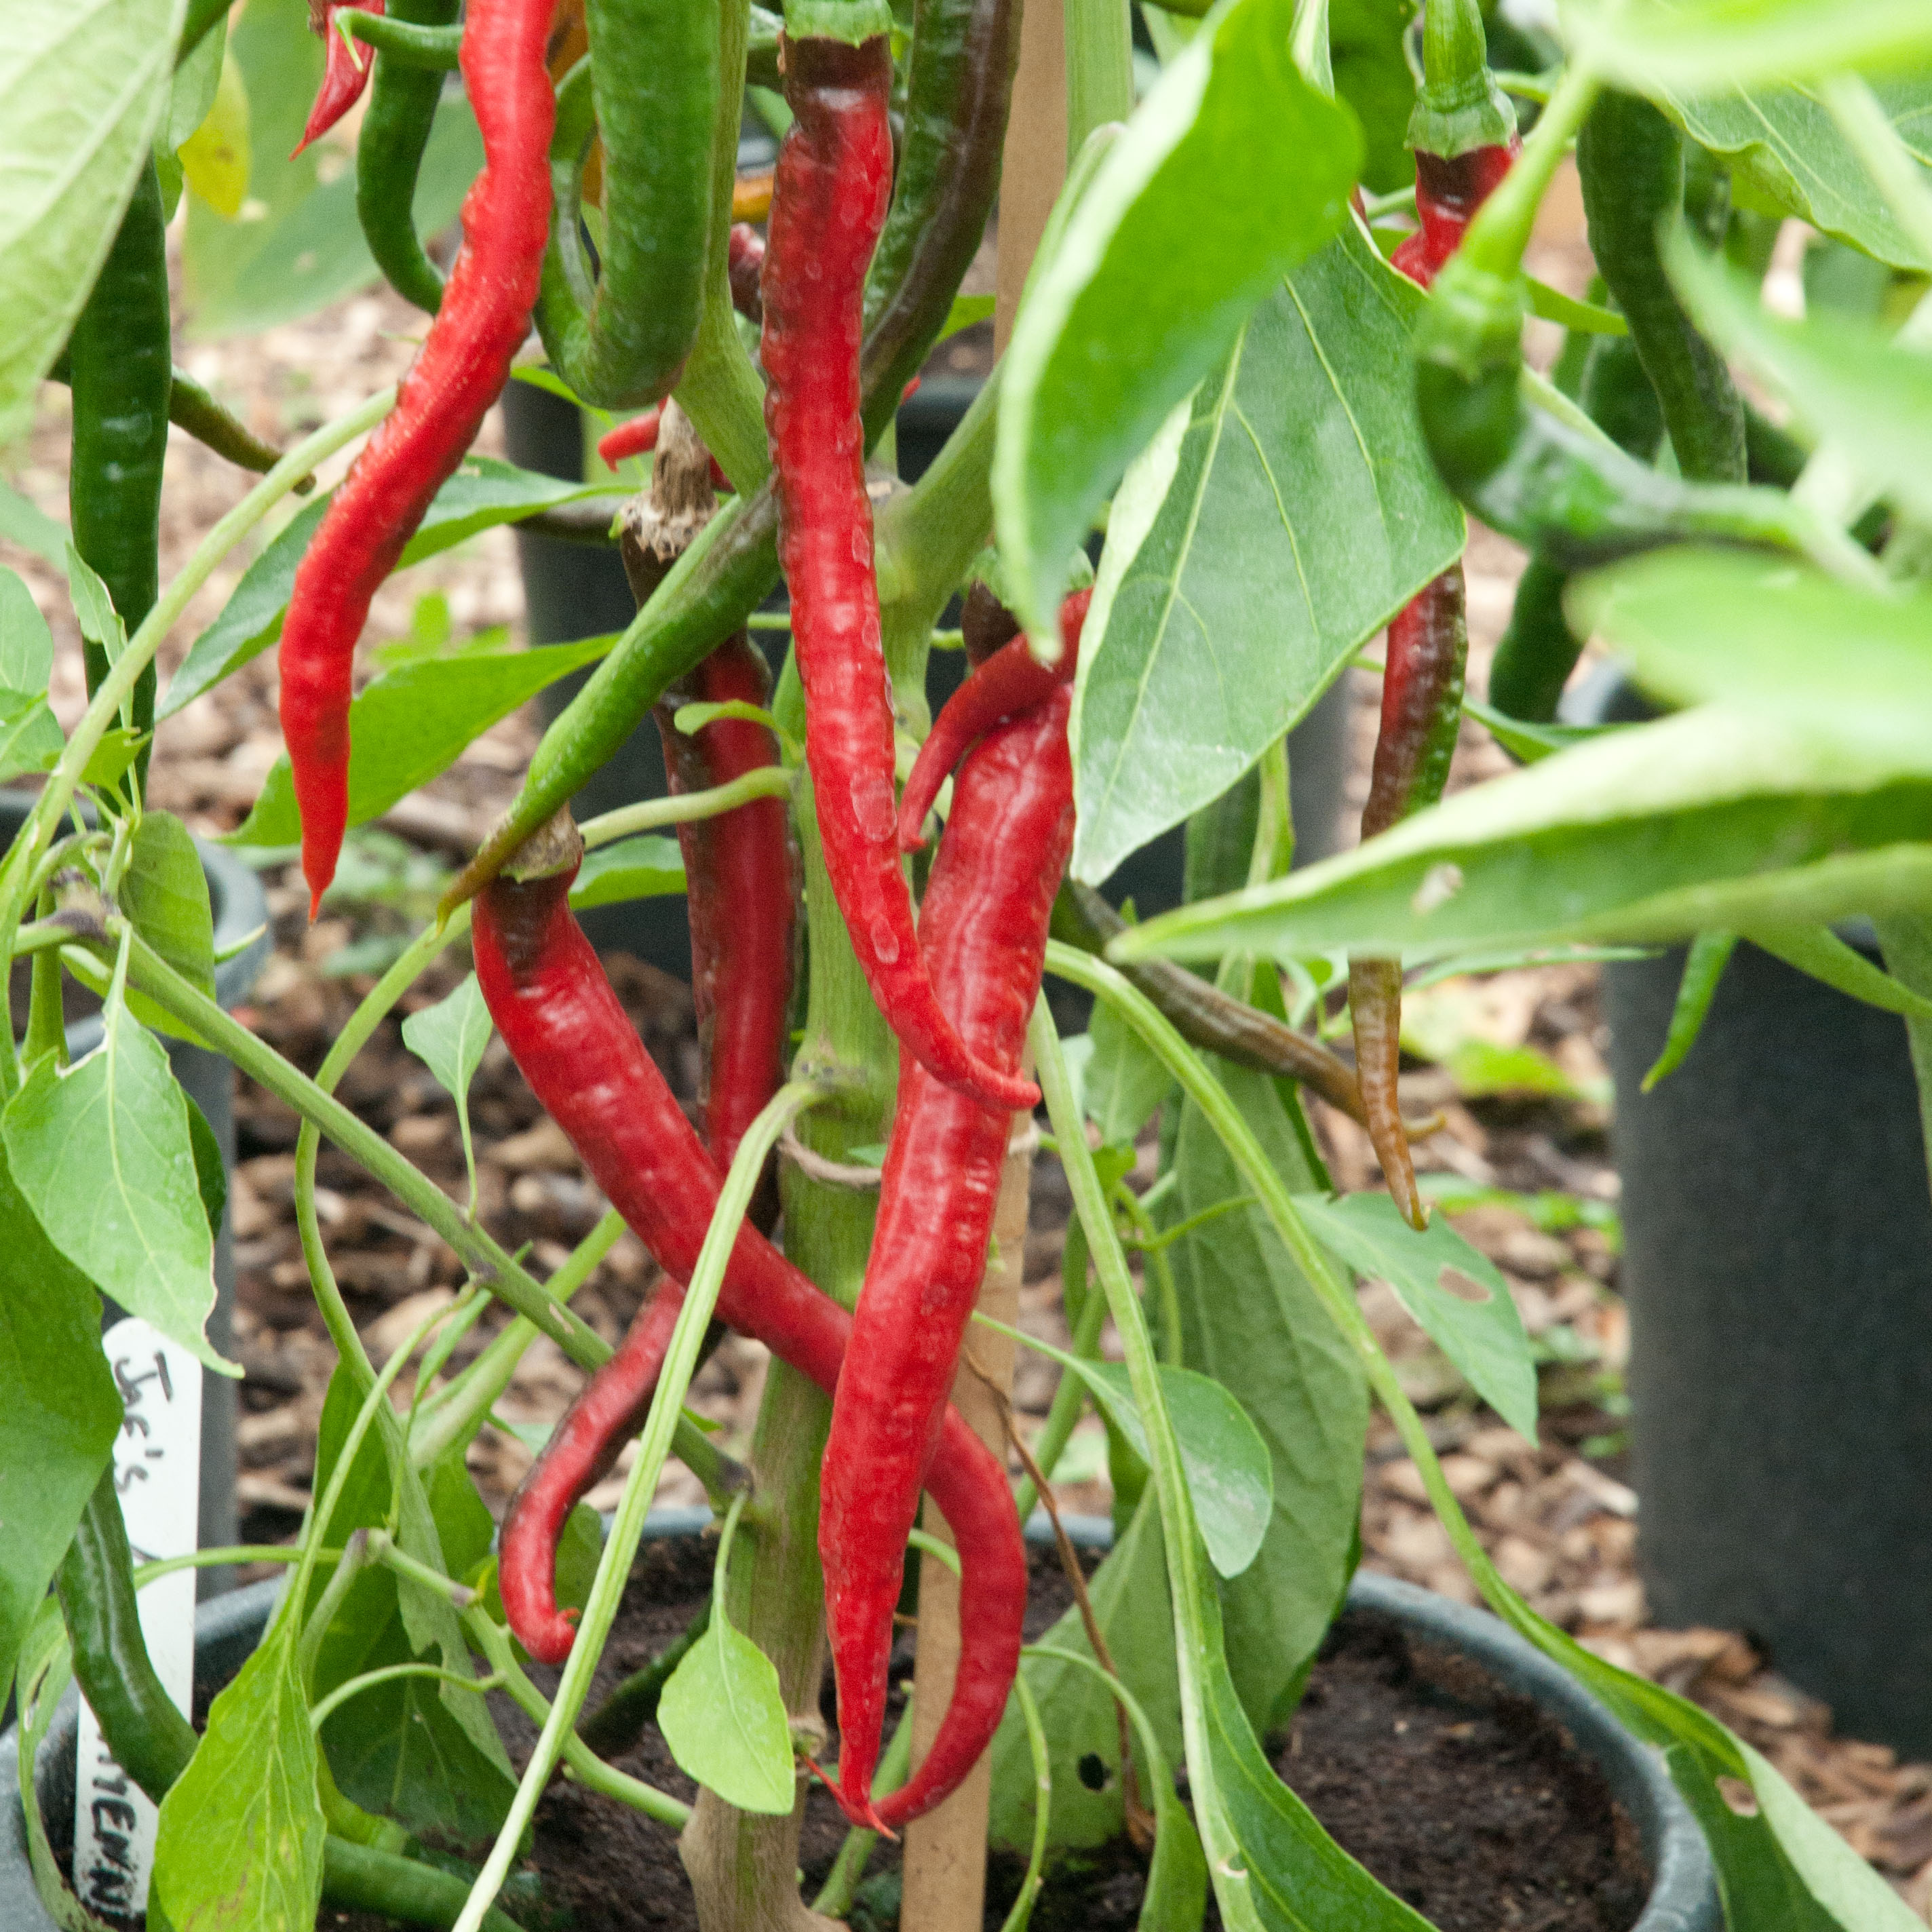 Photo credit: chillies-at-victotiana-nursery